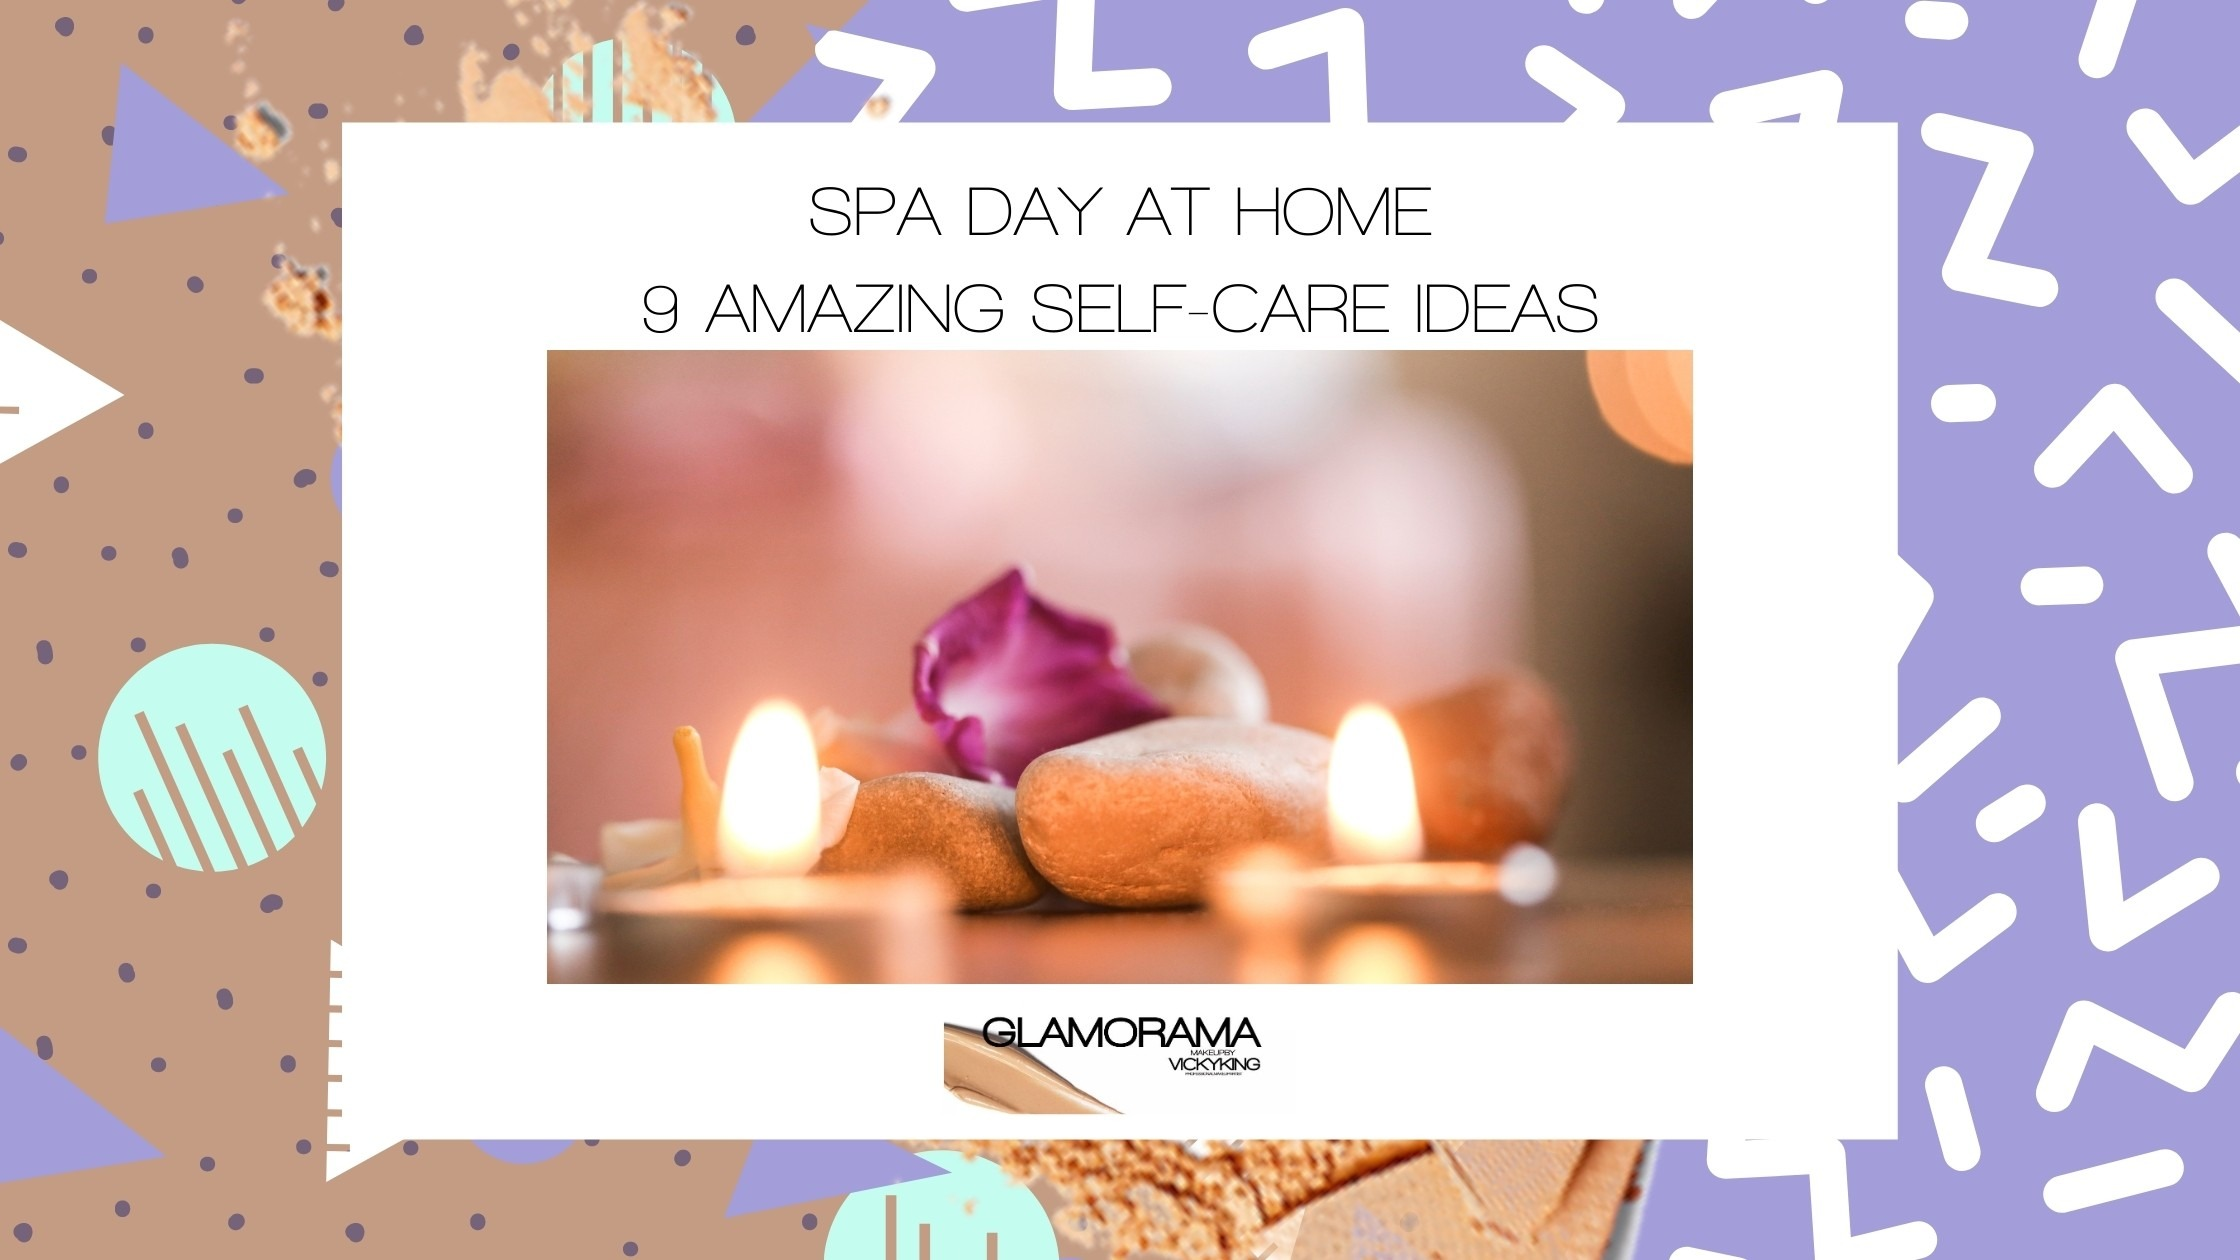 Spa Day at Home - # self-care ideas